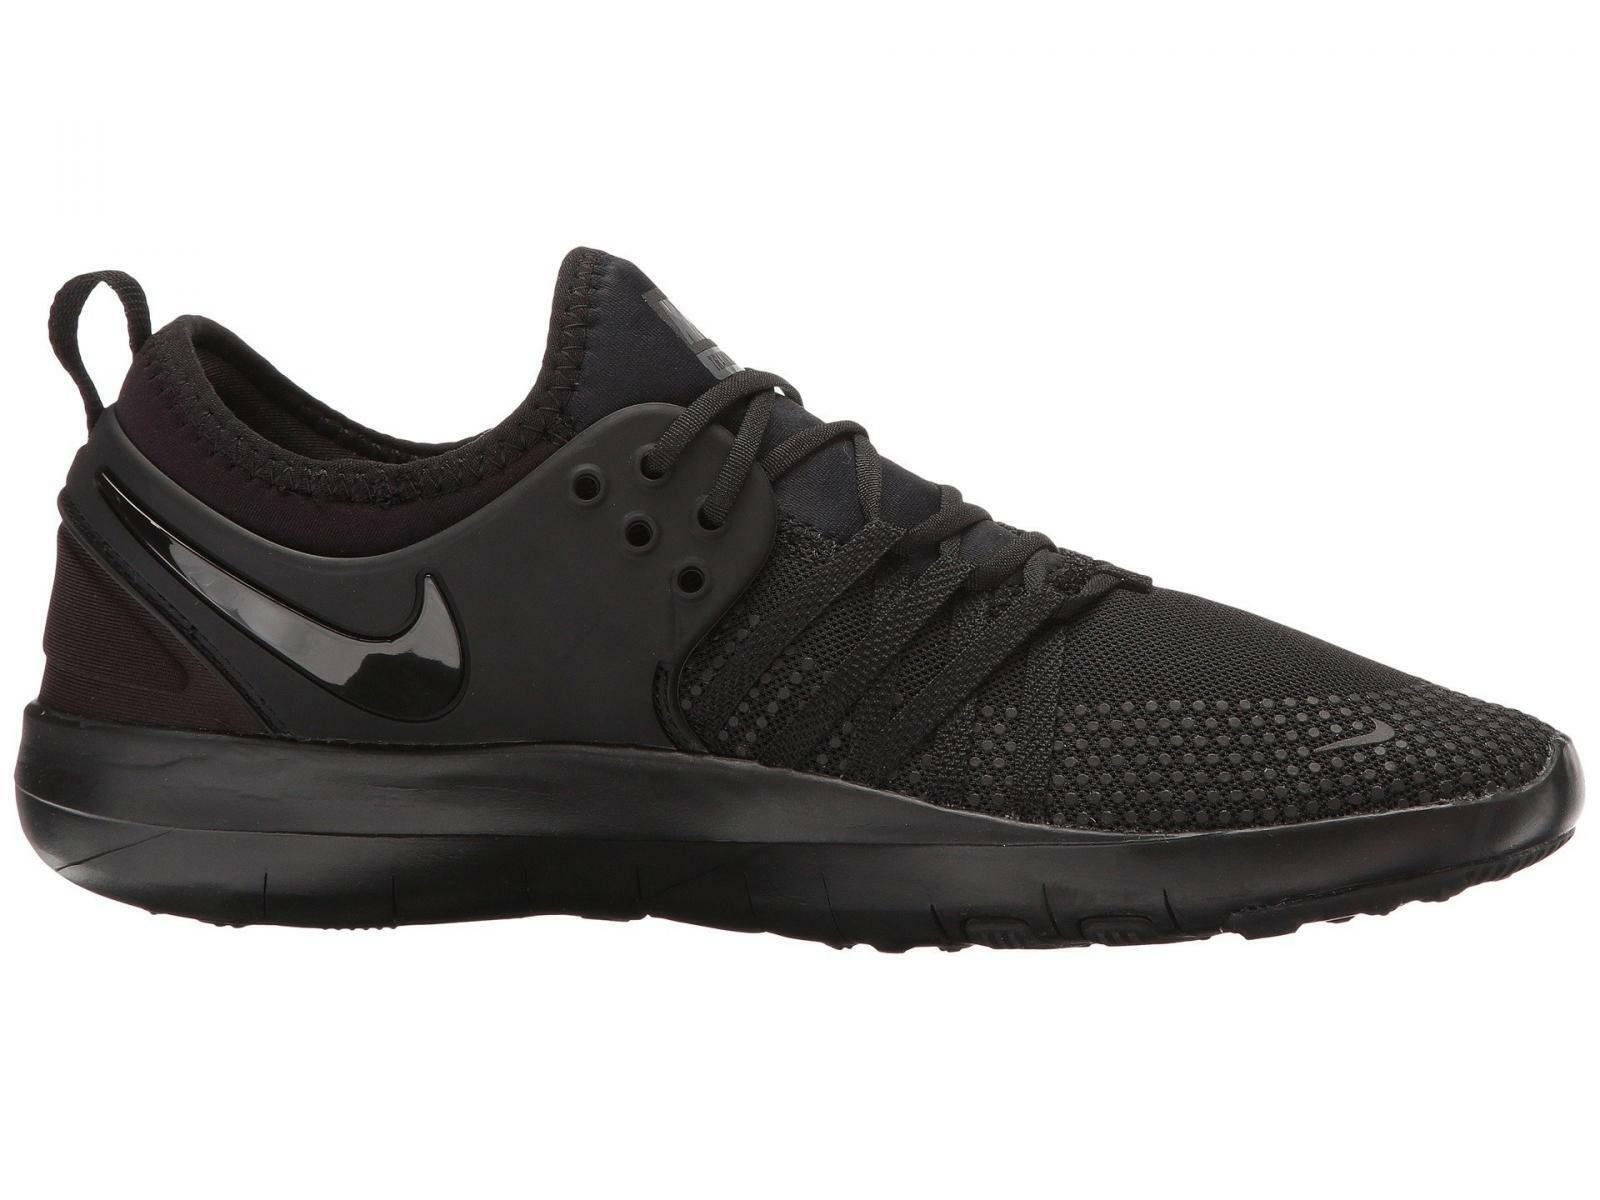 Mujeres Nike Free Tr 7 Fitness Training Zapatillas Negro 904651 003